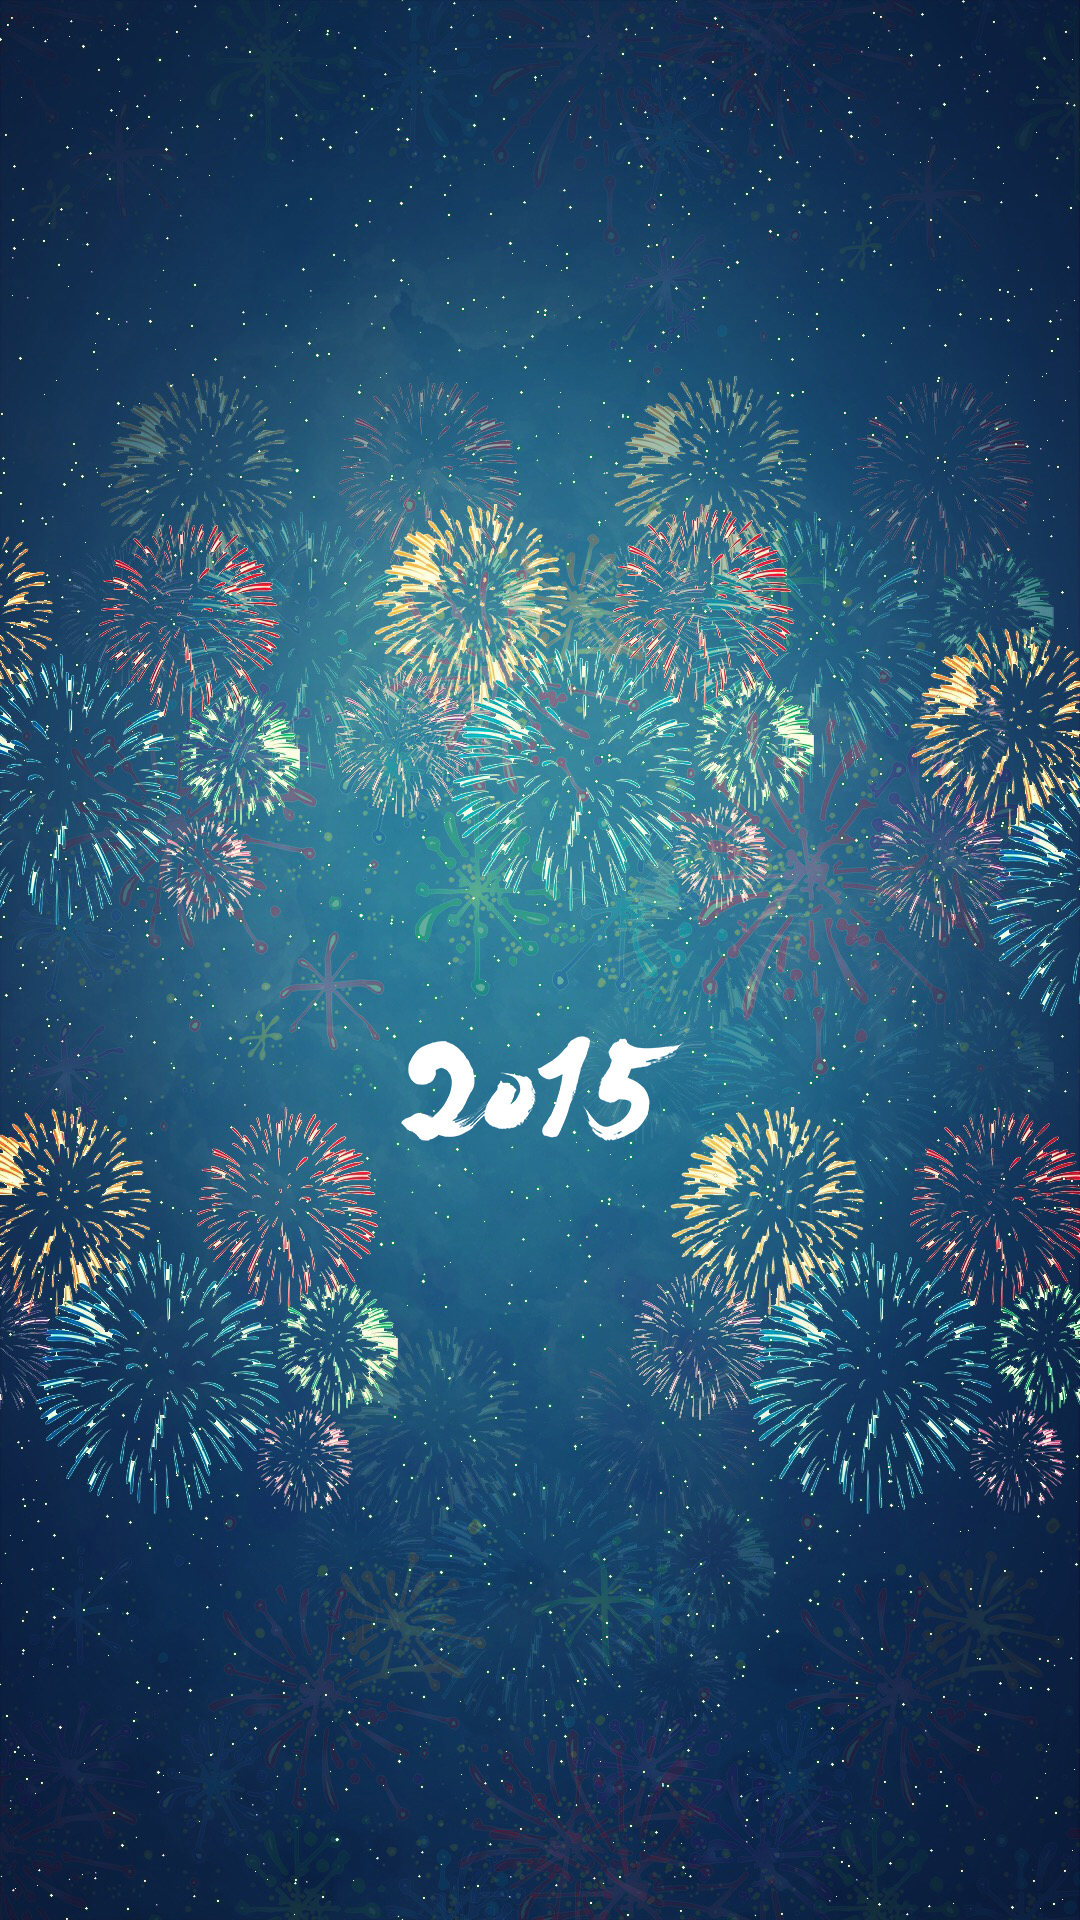 AR72014 iPhone New Year 2015 Lock screen wallpaper